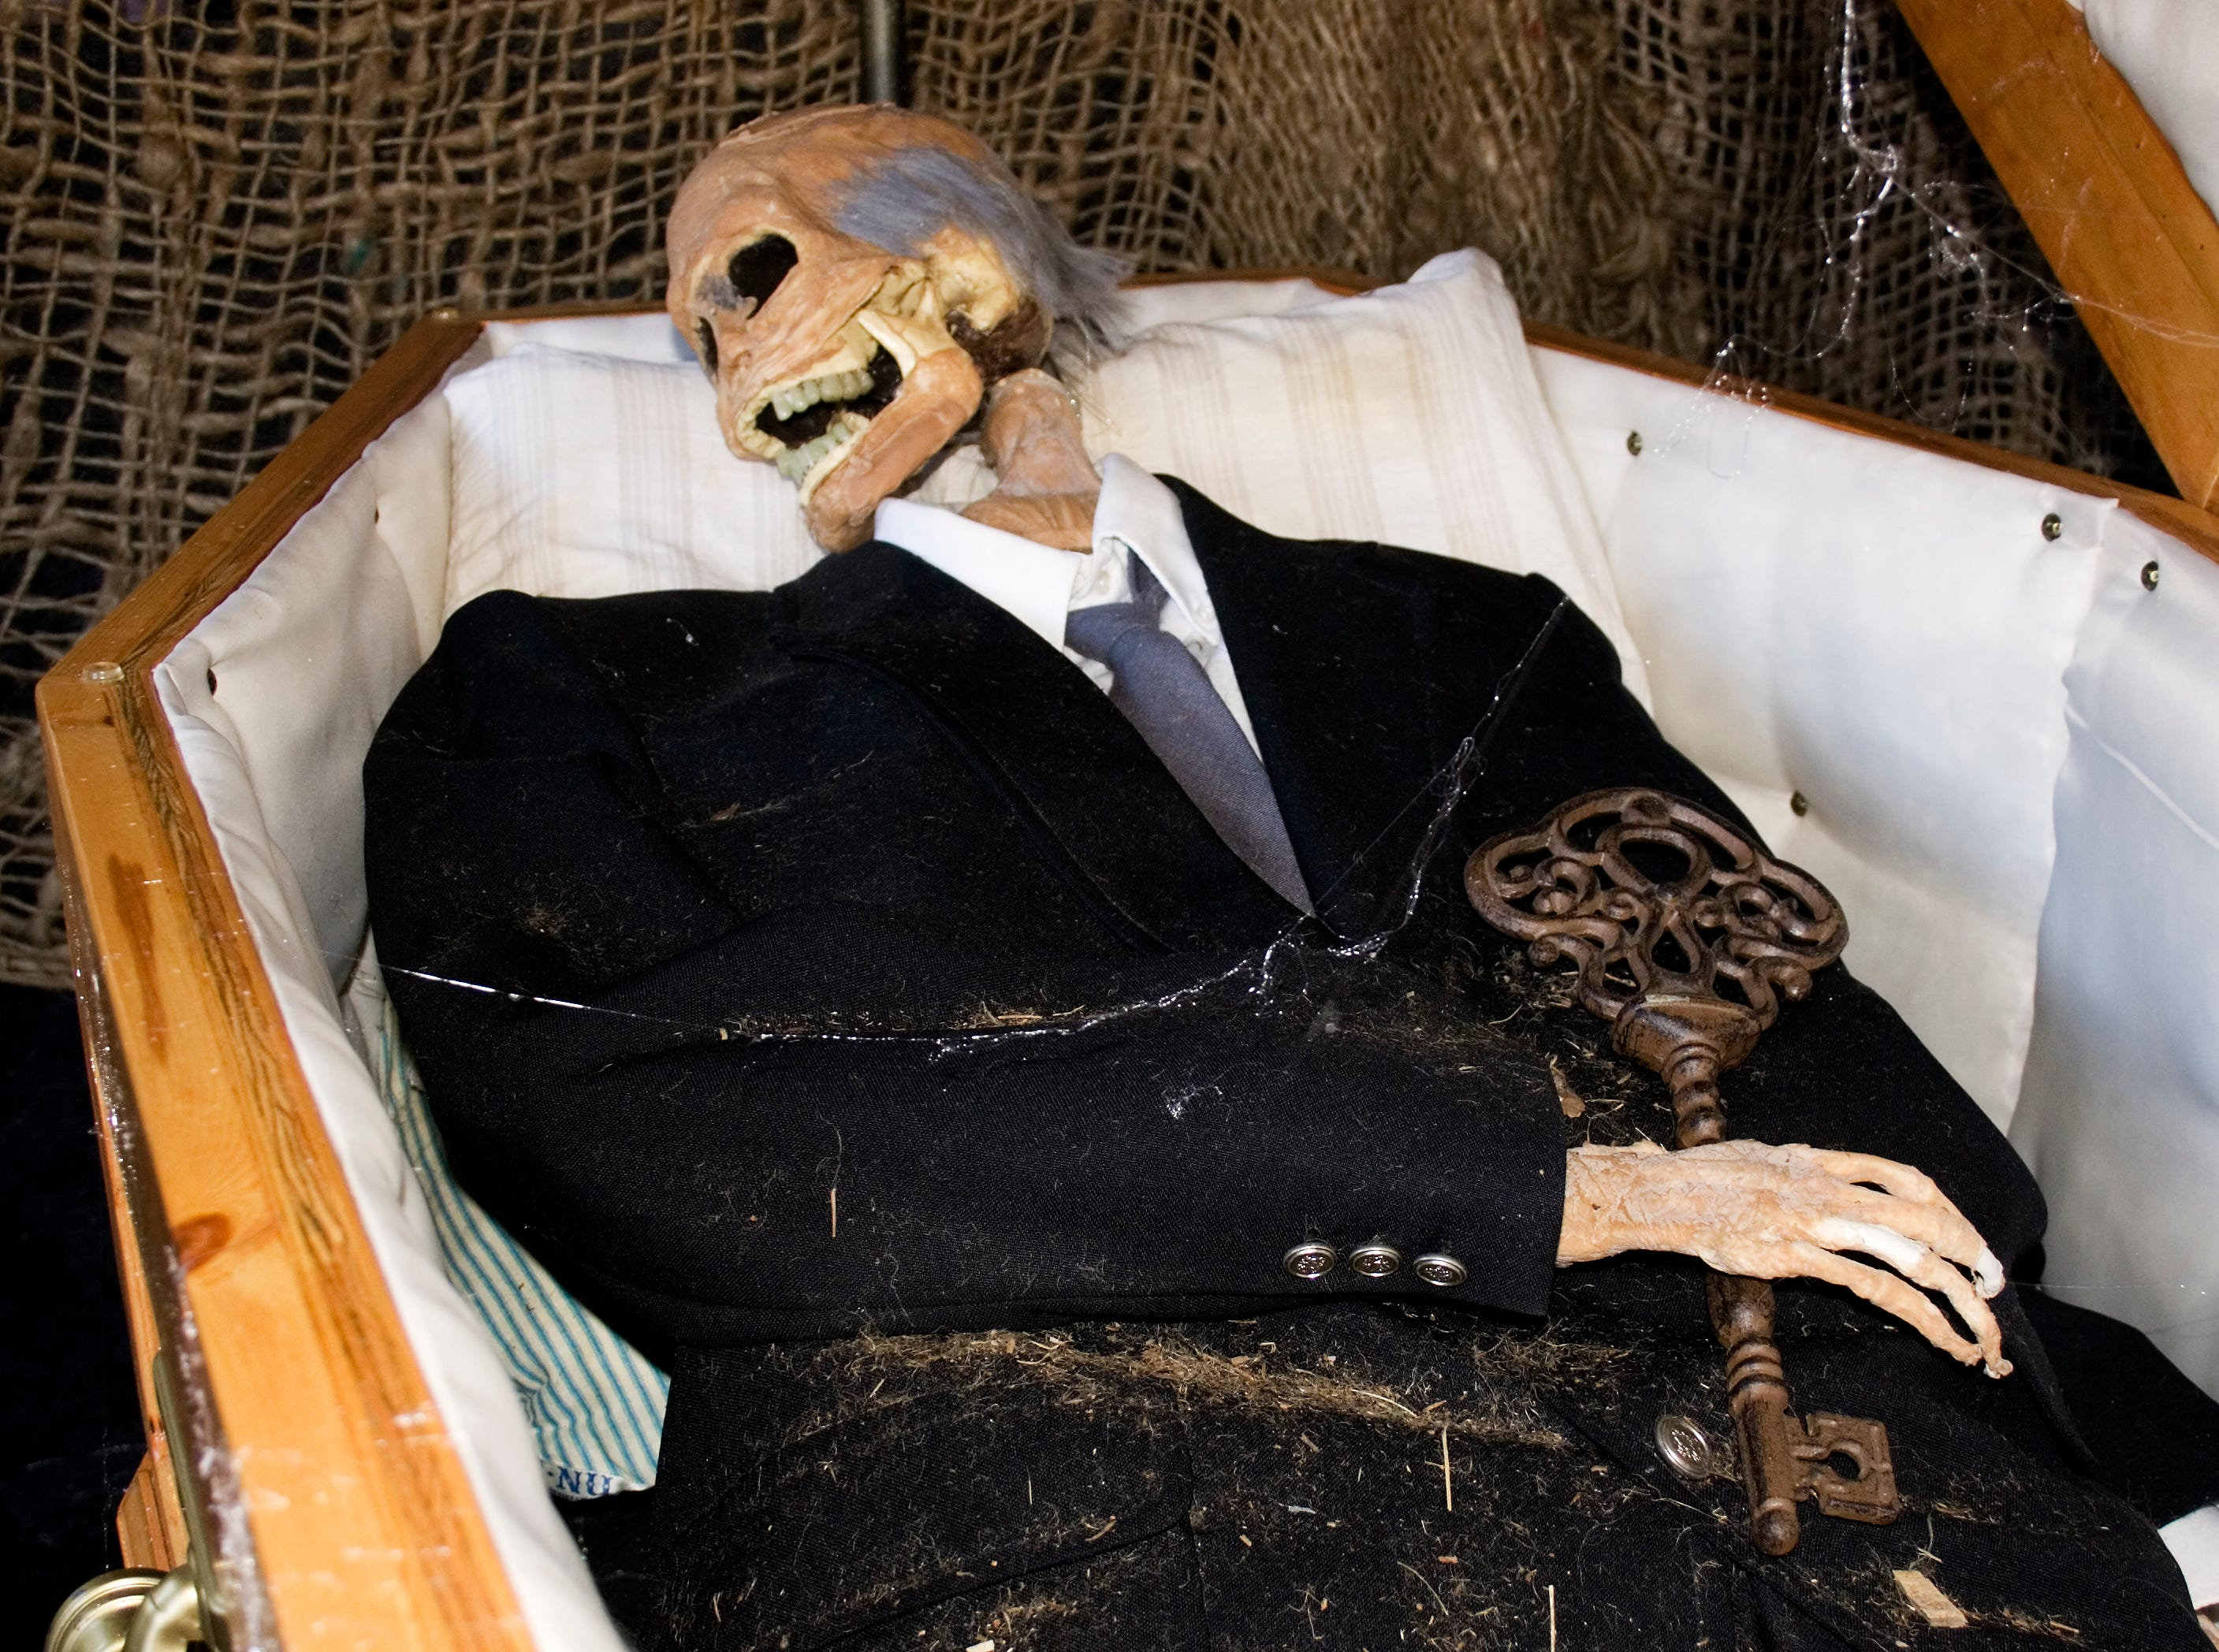 2008: This ghoul's final resting place is in Kingsbury Cemetery, a Halloween haunted house operated by Keith Hoover of Corning.